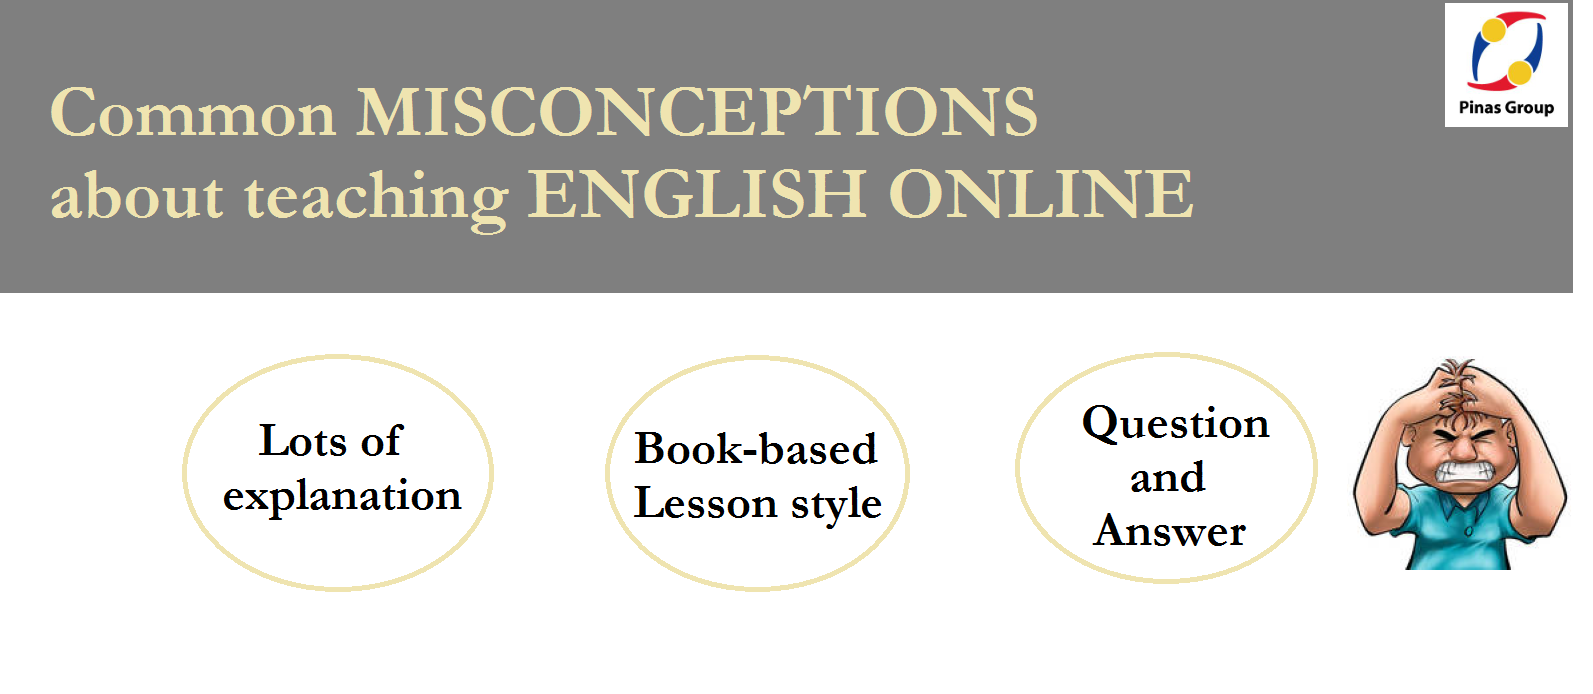 Common Misconceptions about teaching English Online.